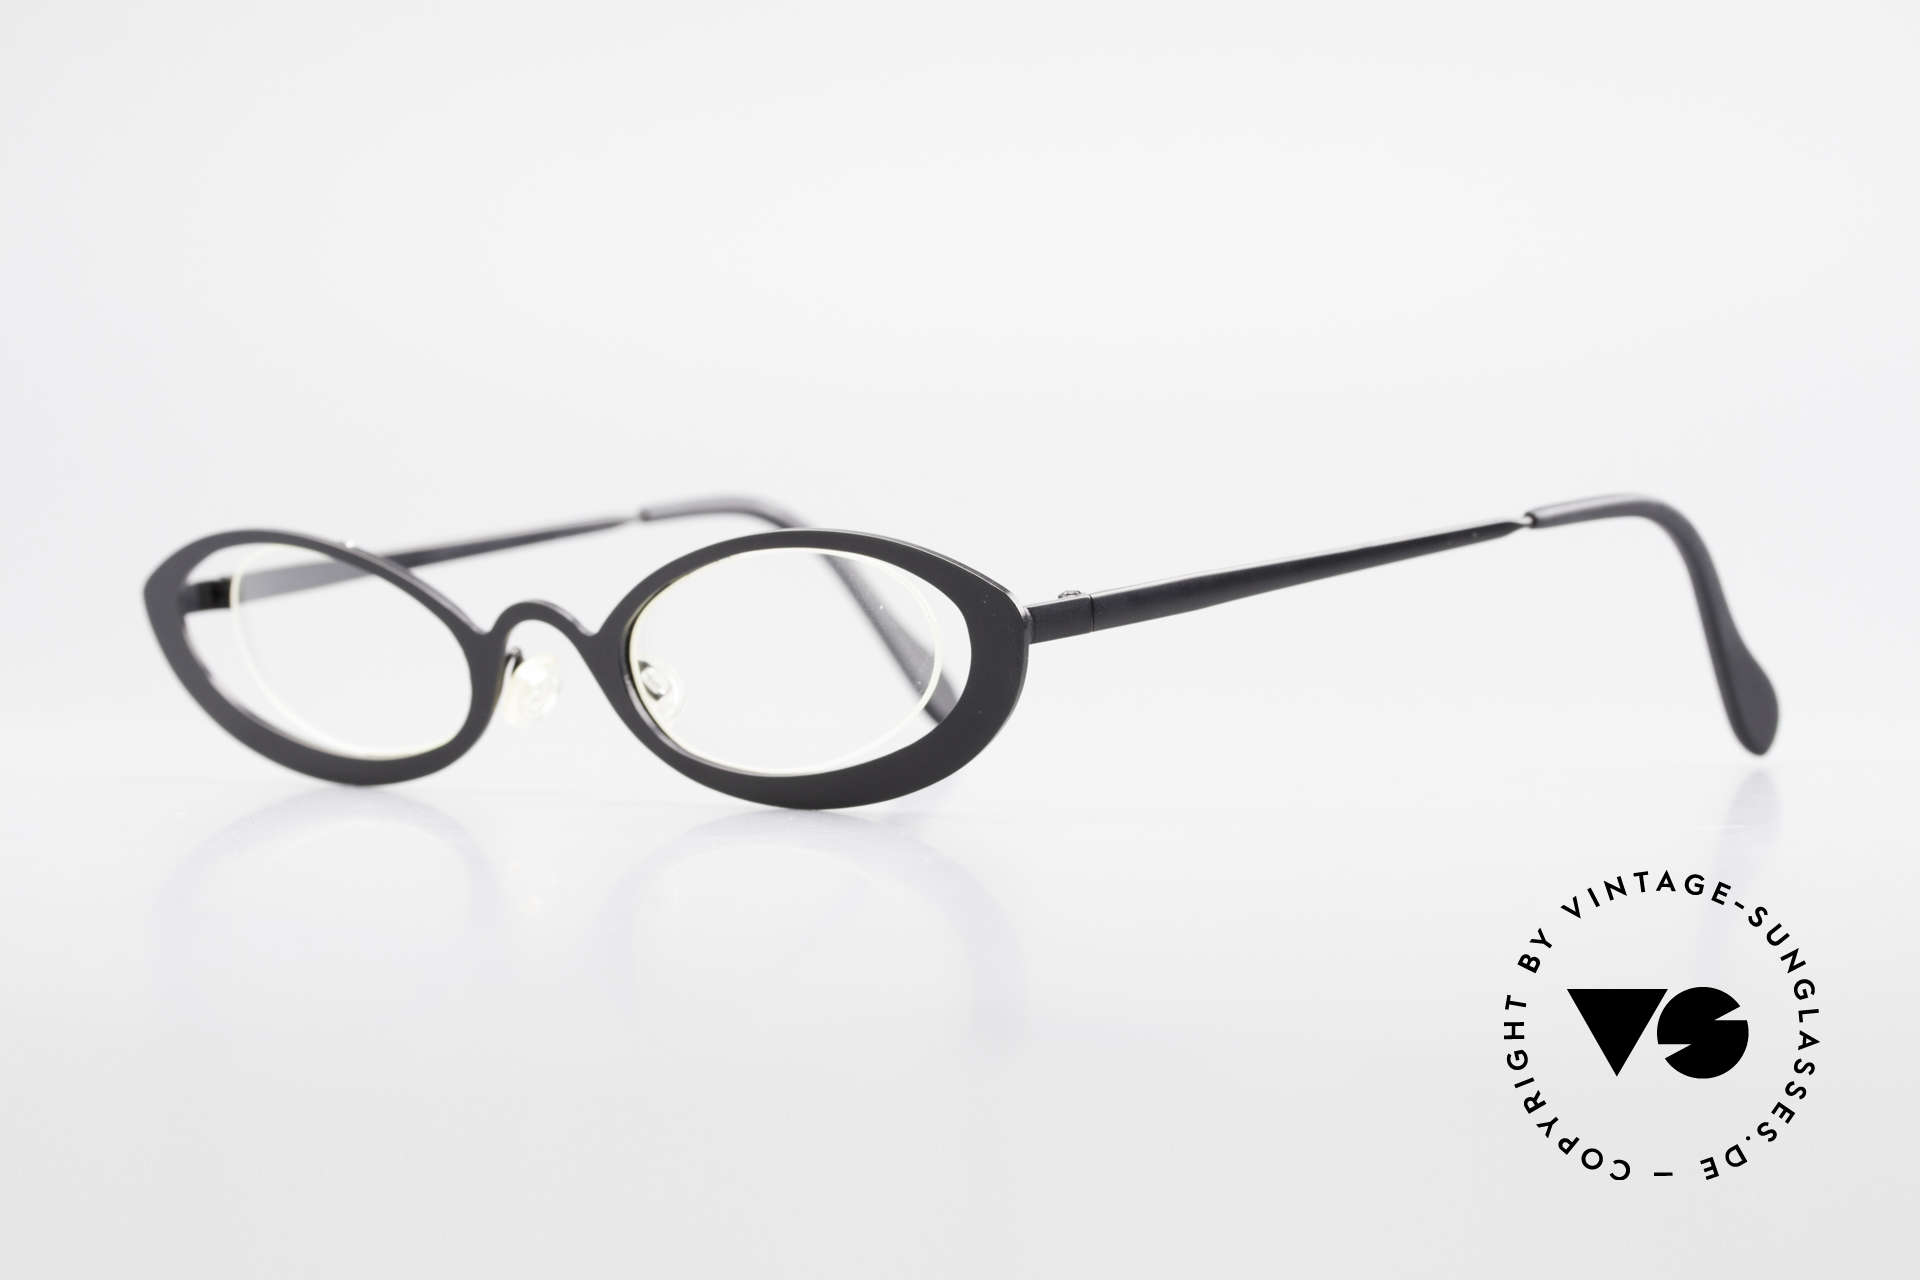 Theo Belgium RaRa Rimless 90's Cateye Glasses, lenses are fixed with a nylor thread (Cat's eye style), Made for Women